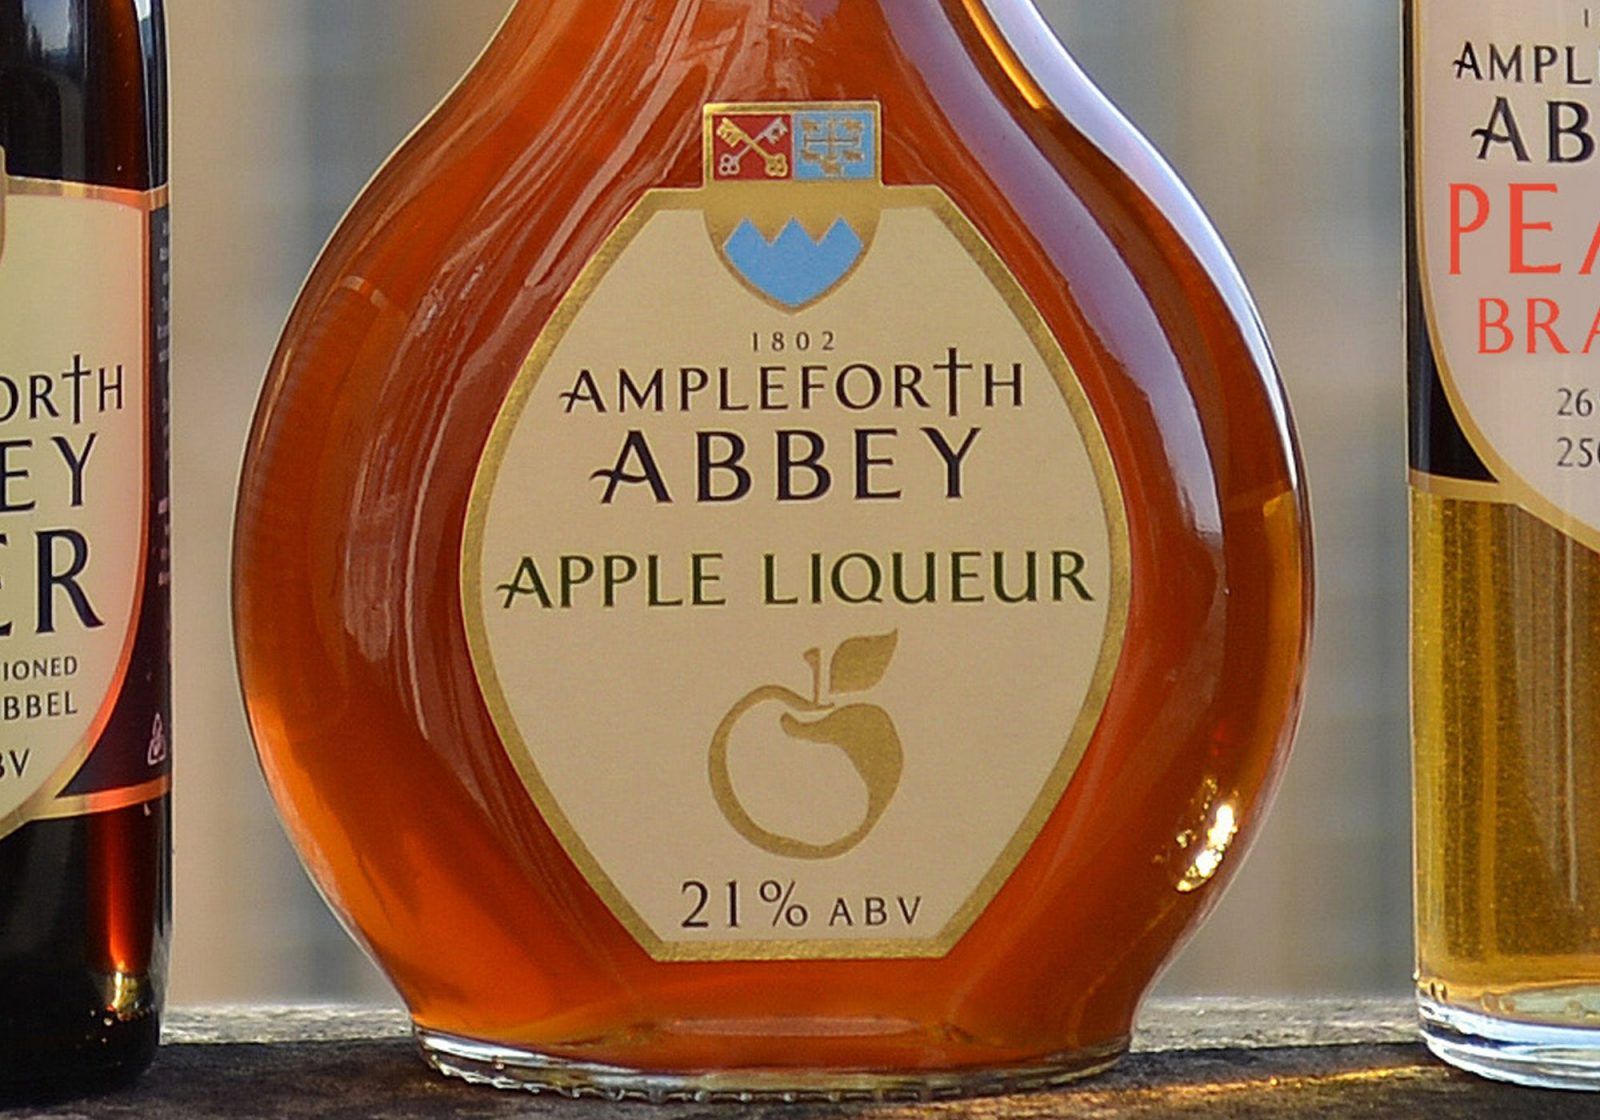 Close up of a packaging label for Ampleforth Abbey Apple Liqueur